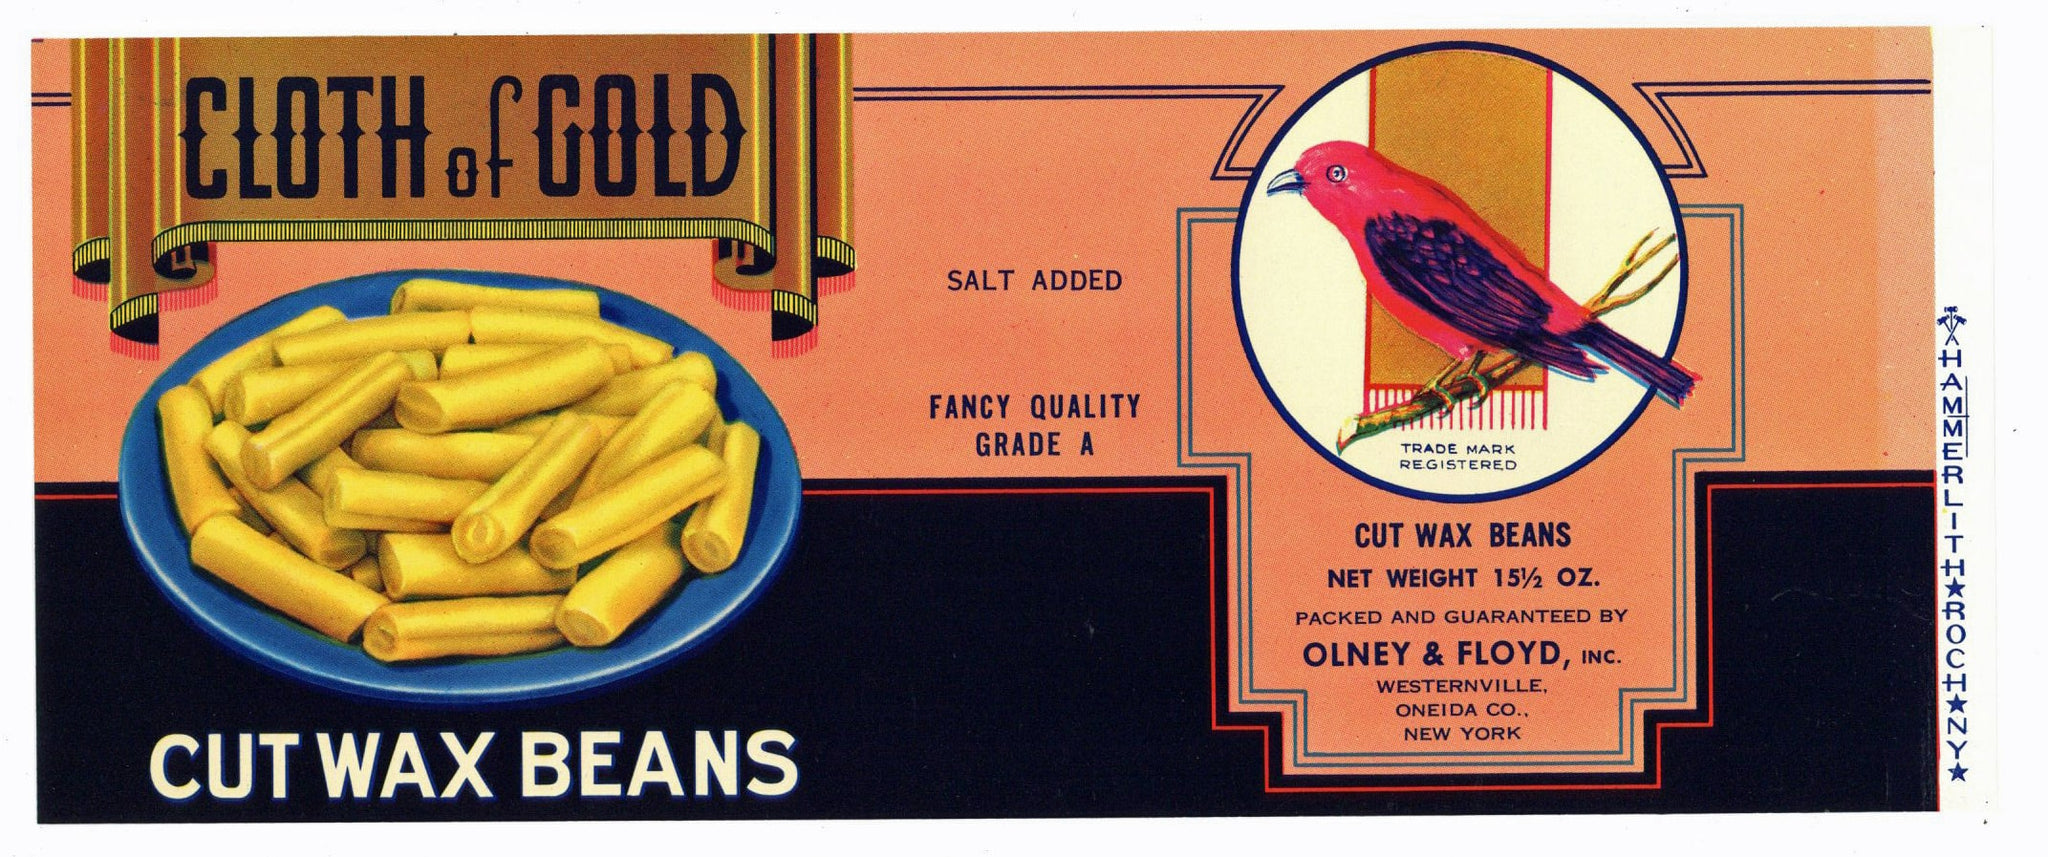 Cloth Of Gold Brand Vintage Olney & Floyd Can Label, bird